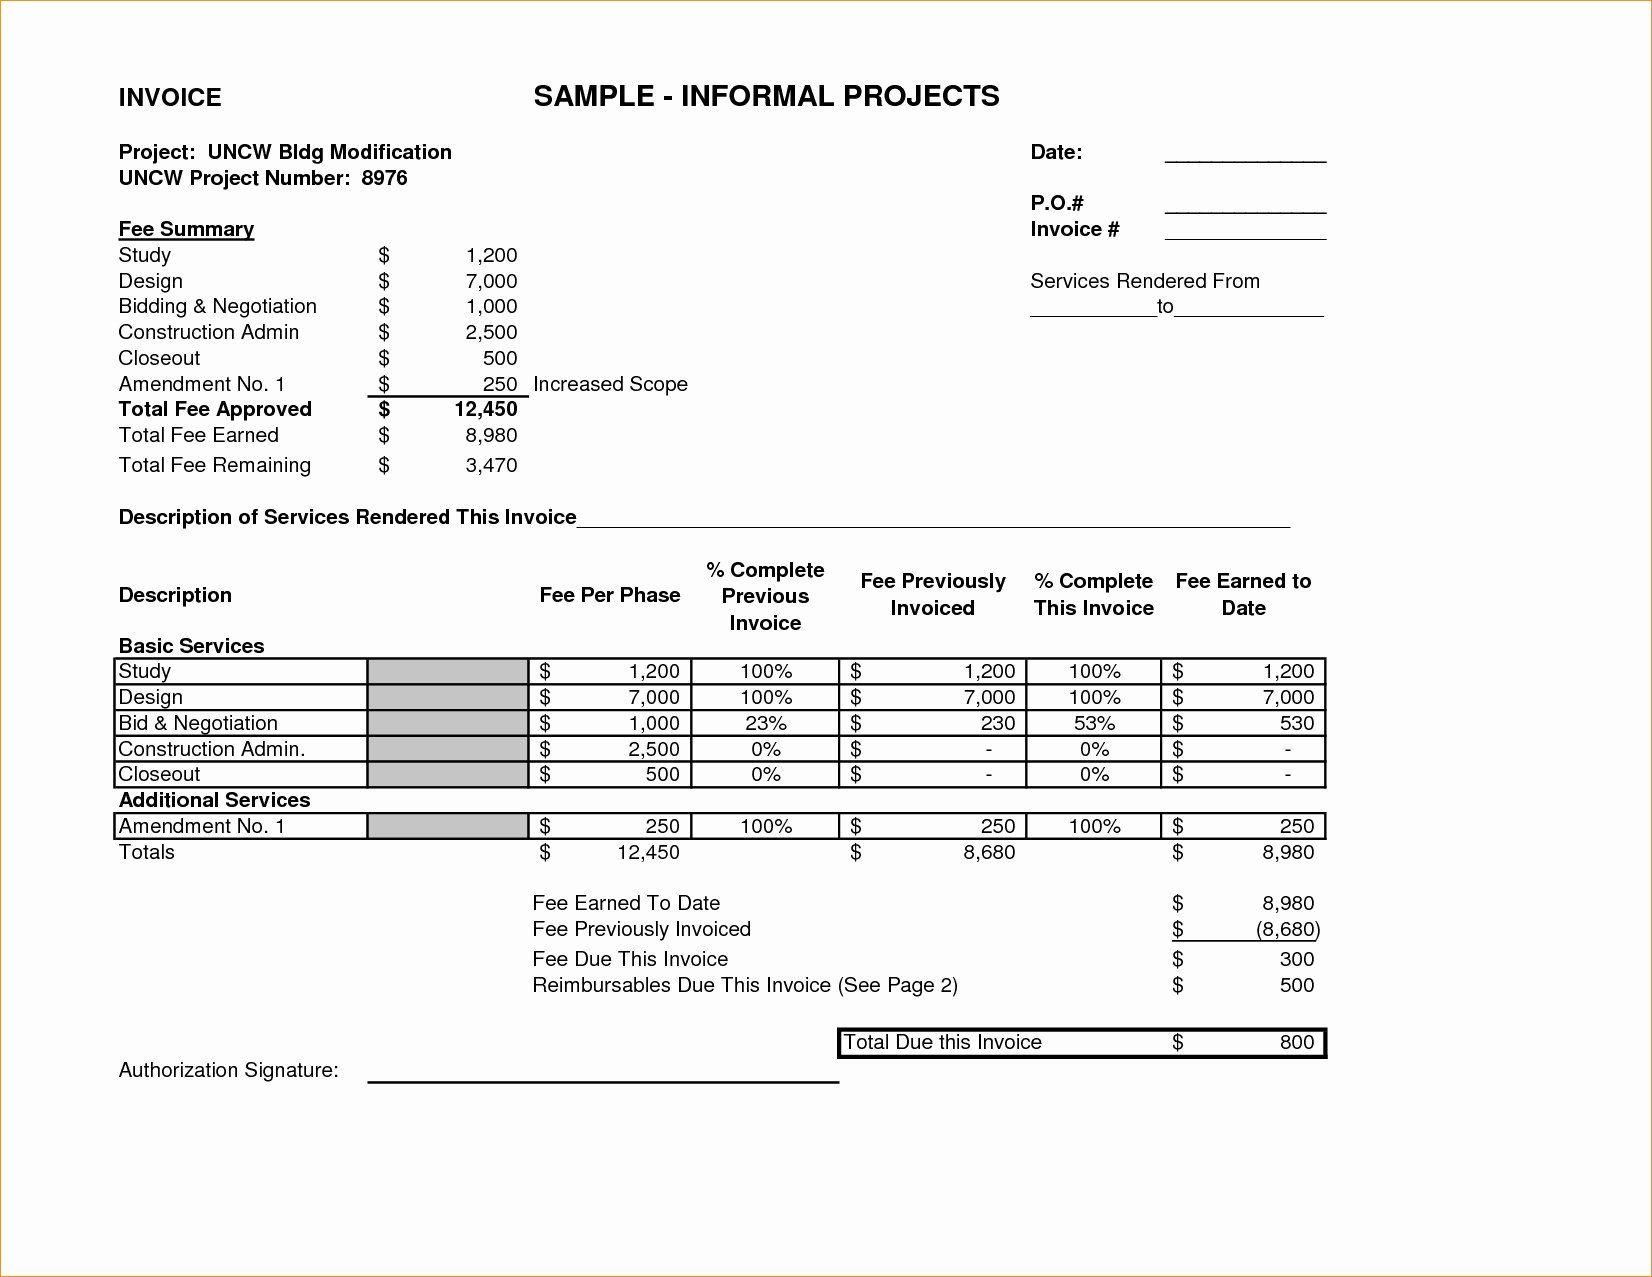 Invoice For Services Rendered Template Inspirational Invoice For Services Rendered Invoice Template Invoice Template Infographic Resume Template Render Design